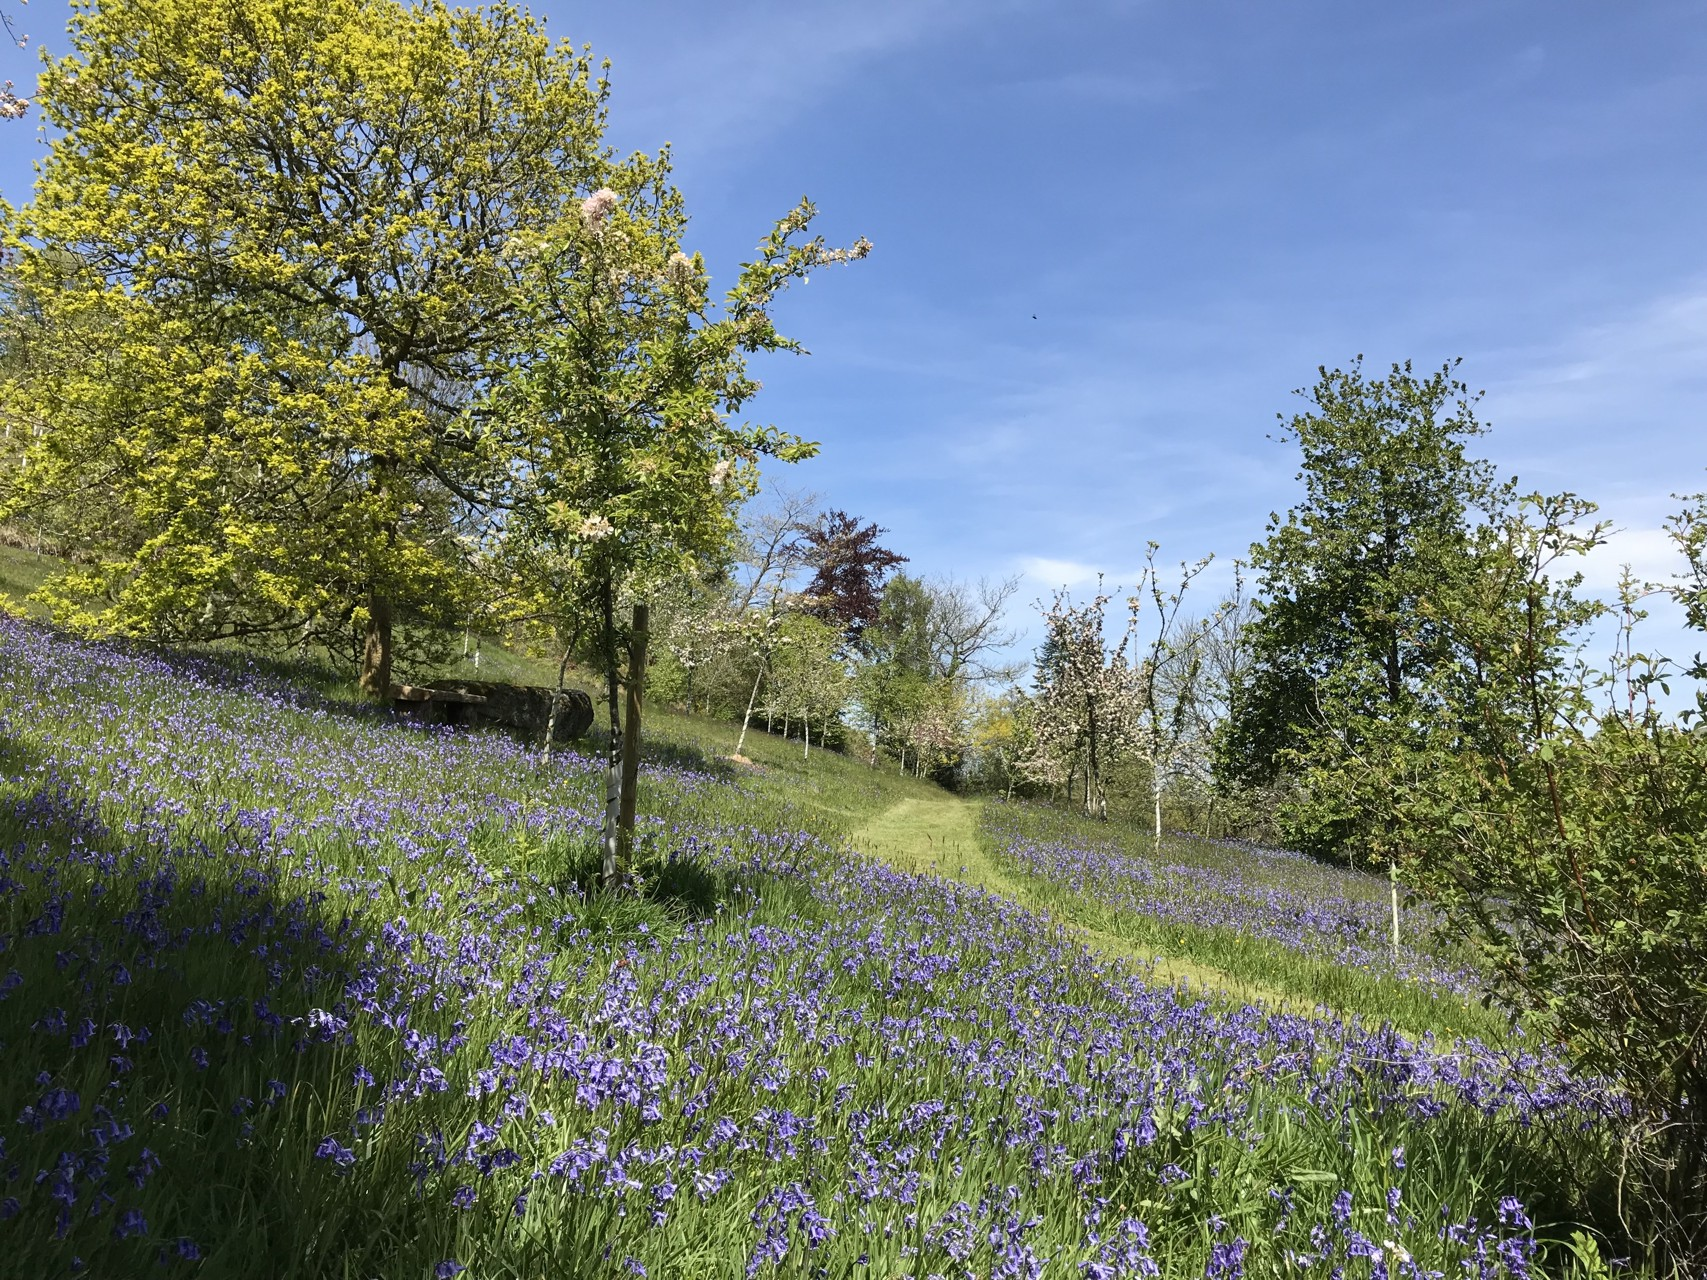 Bluebells in the Orchard